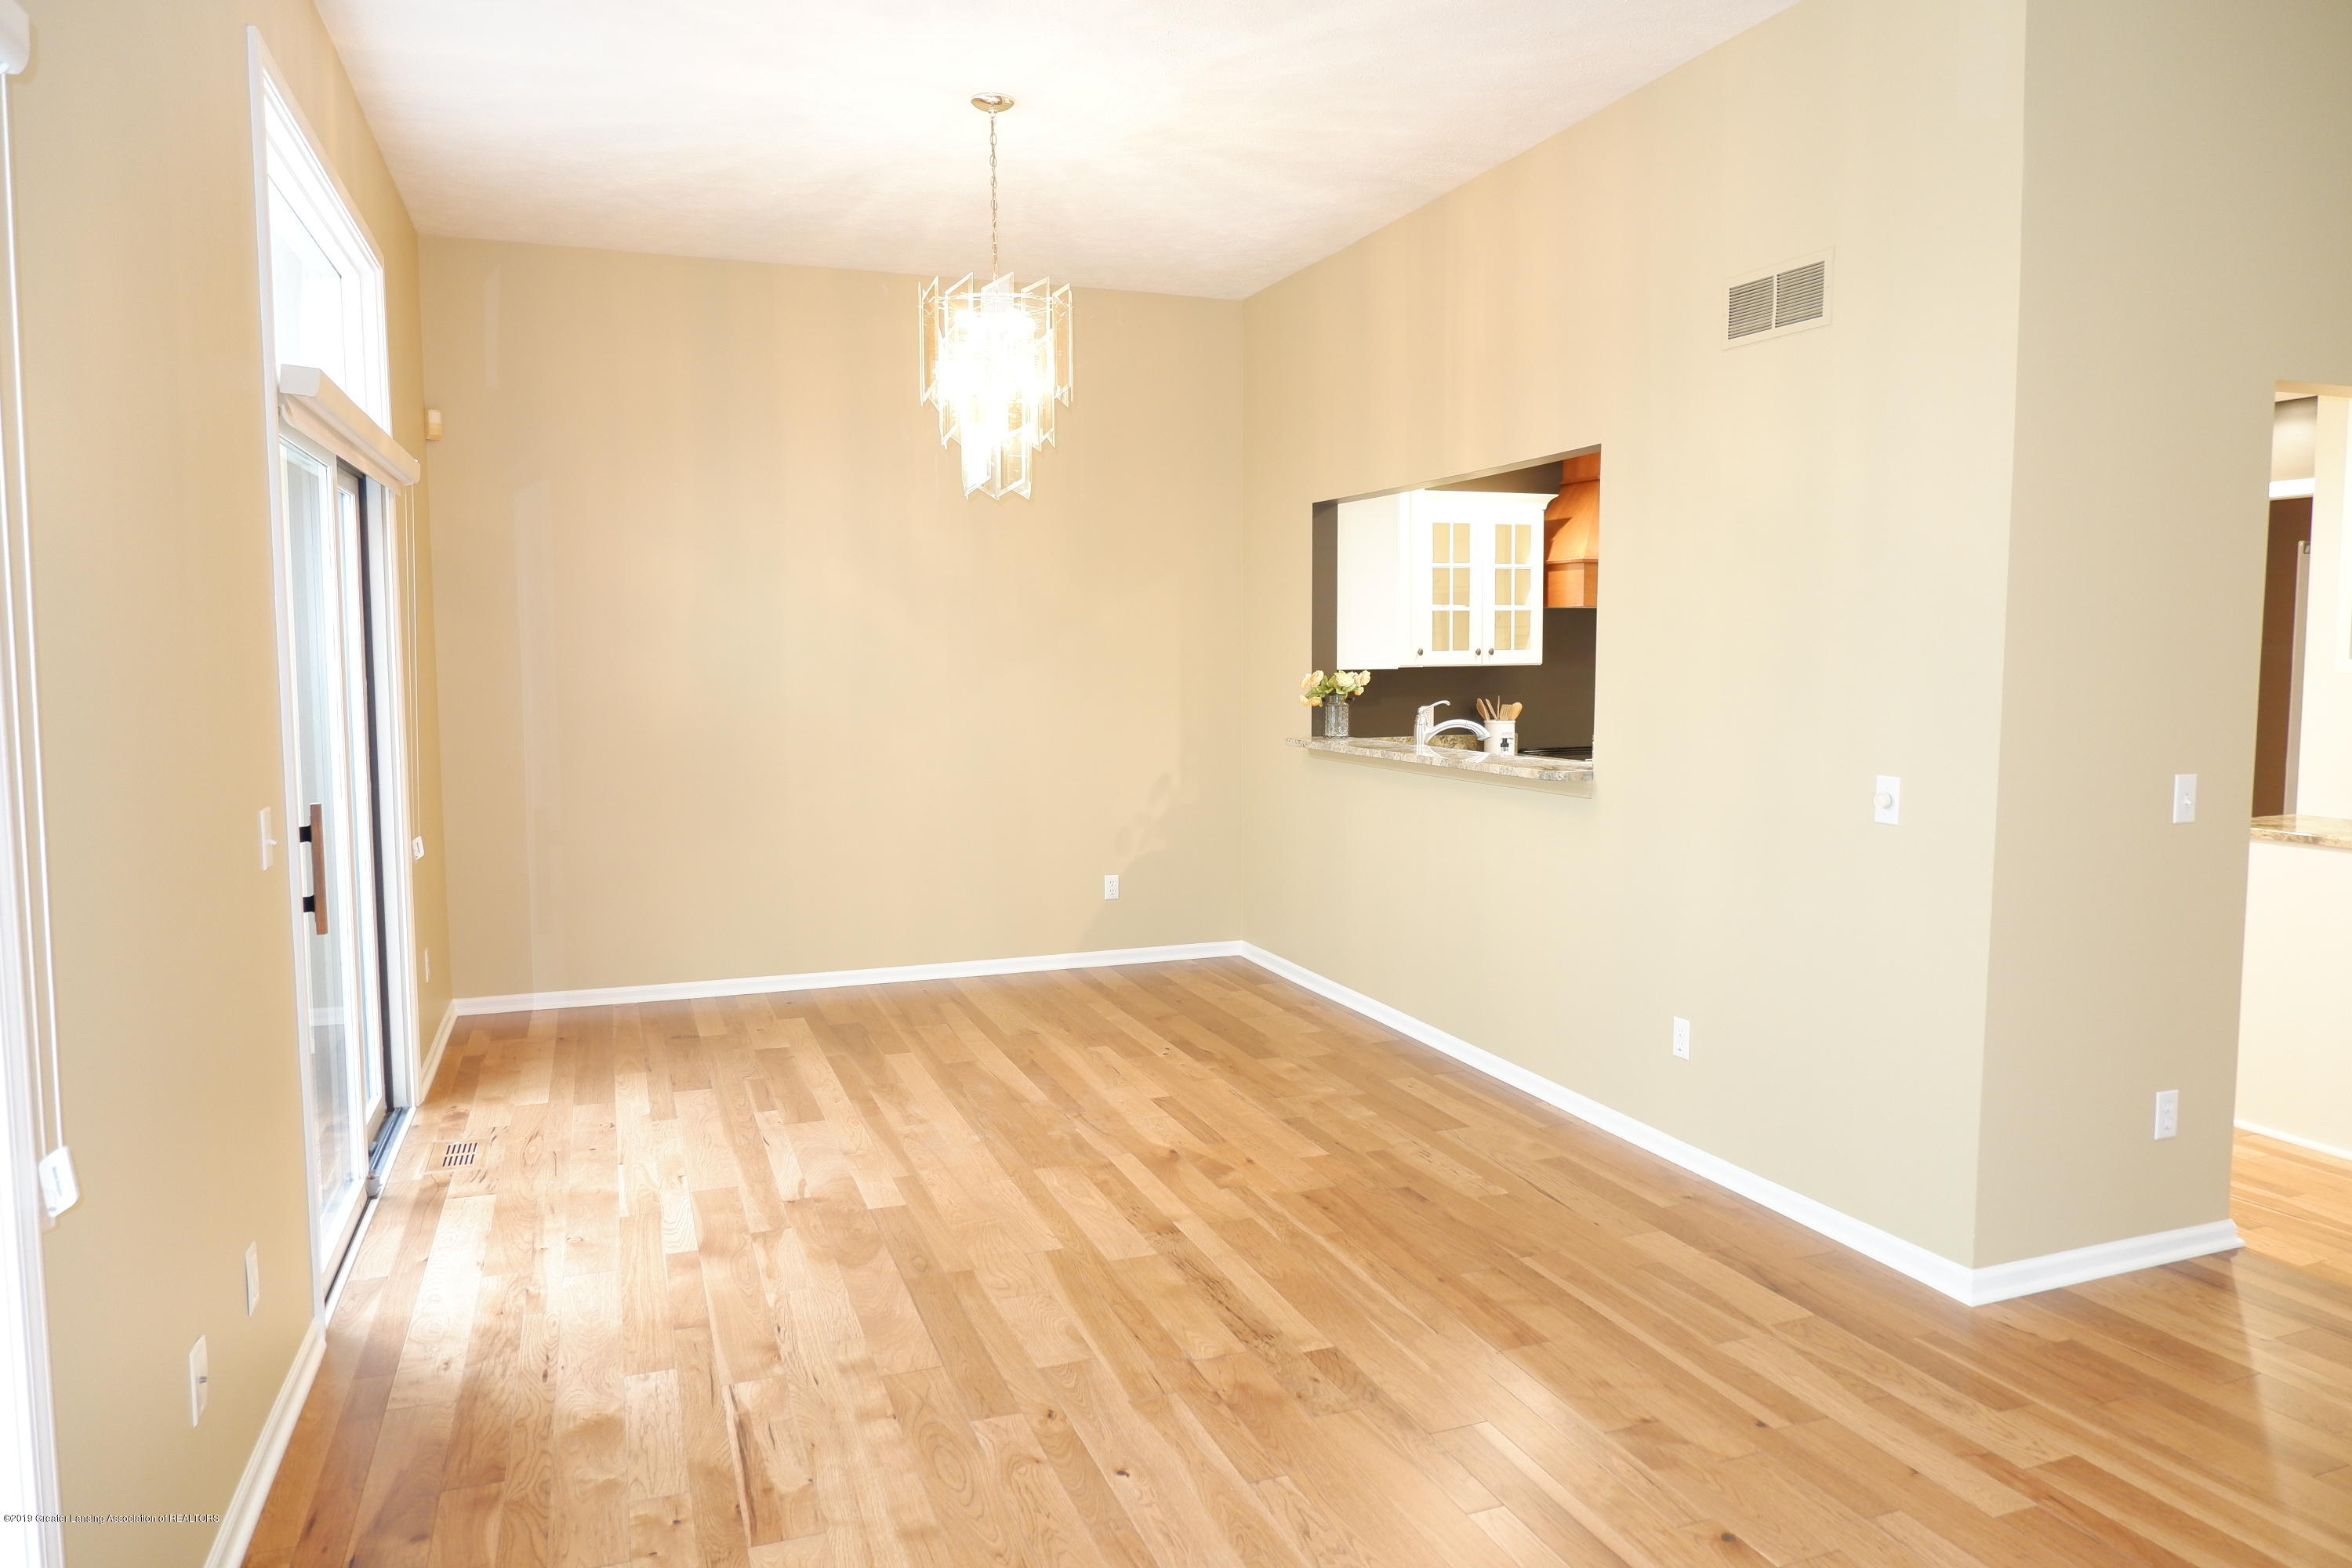 5250 E Hidden Lake Dr 89 - Dining Room area - 7